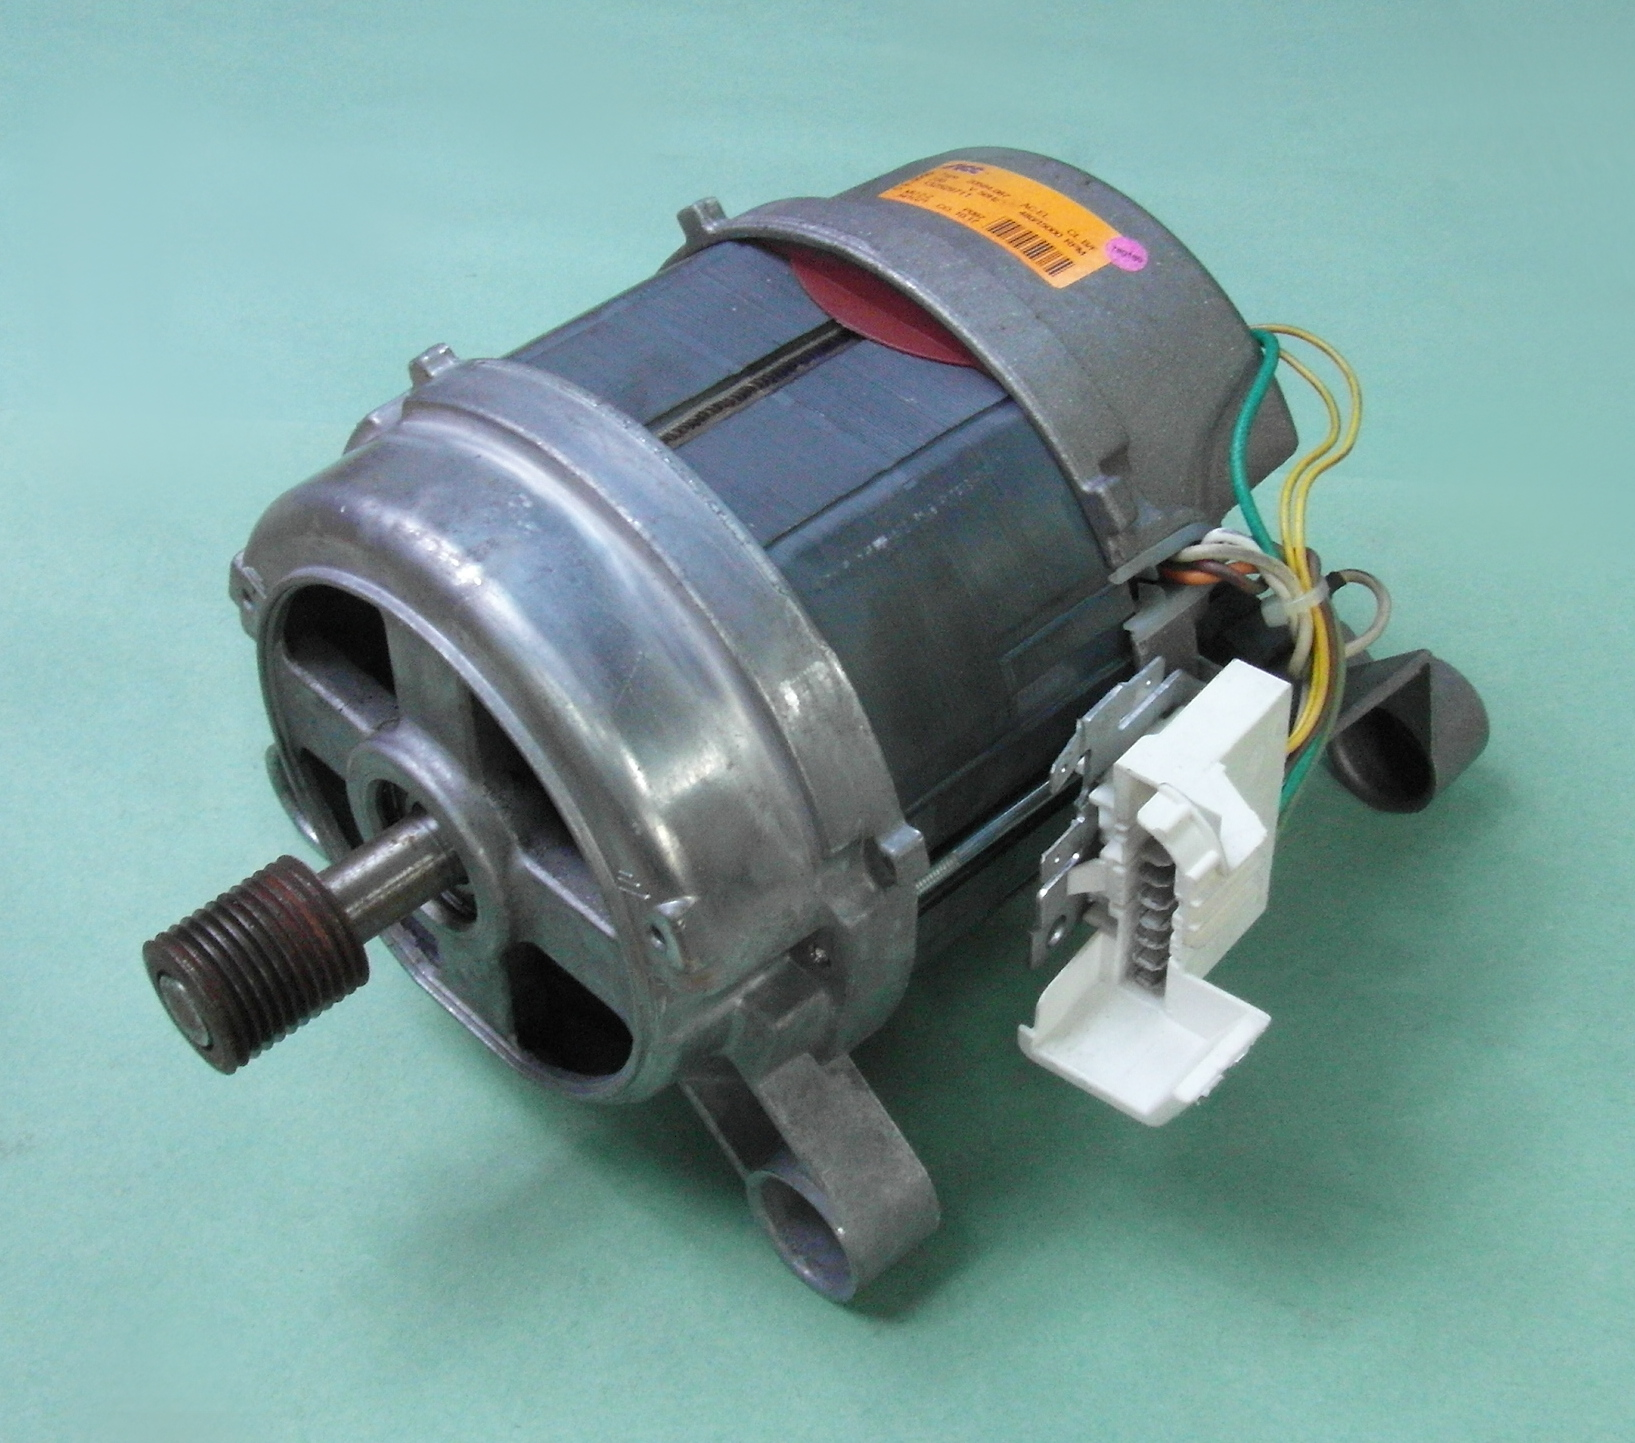 Zanussi zwf14070w1 washing machine motor acc type 20584 for Washing machine motor repair